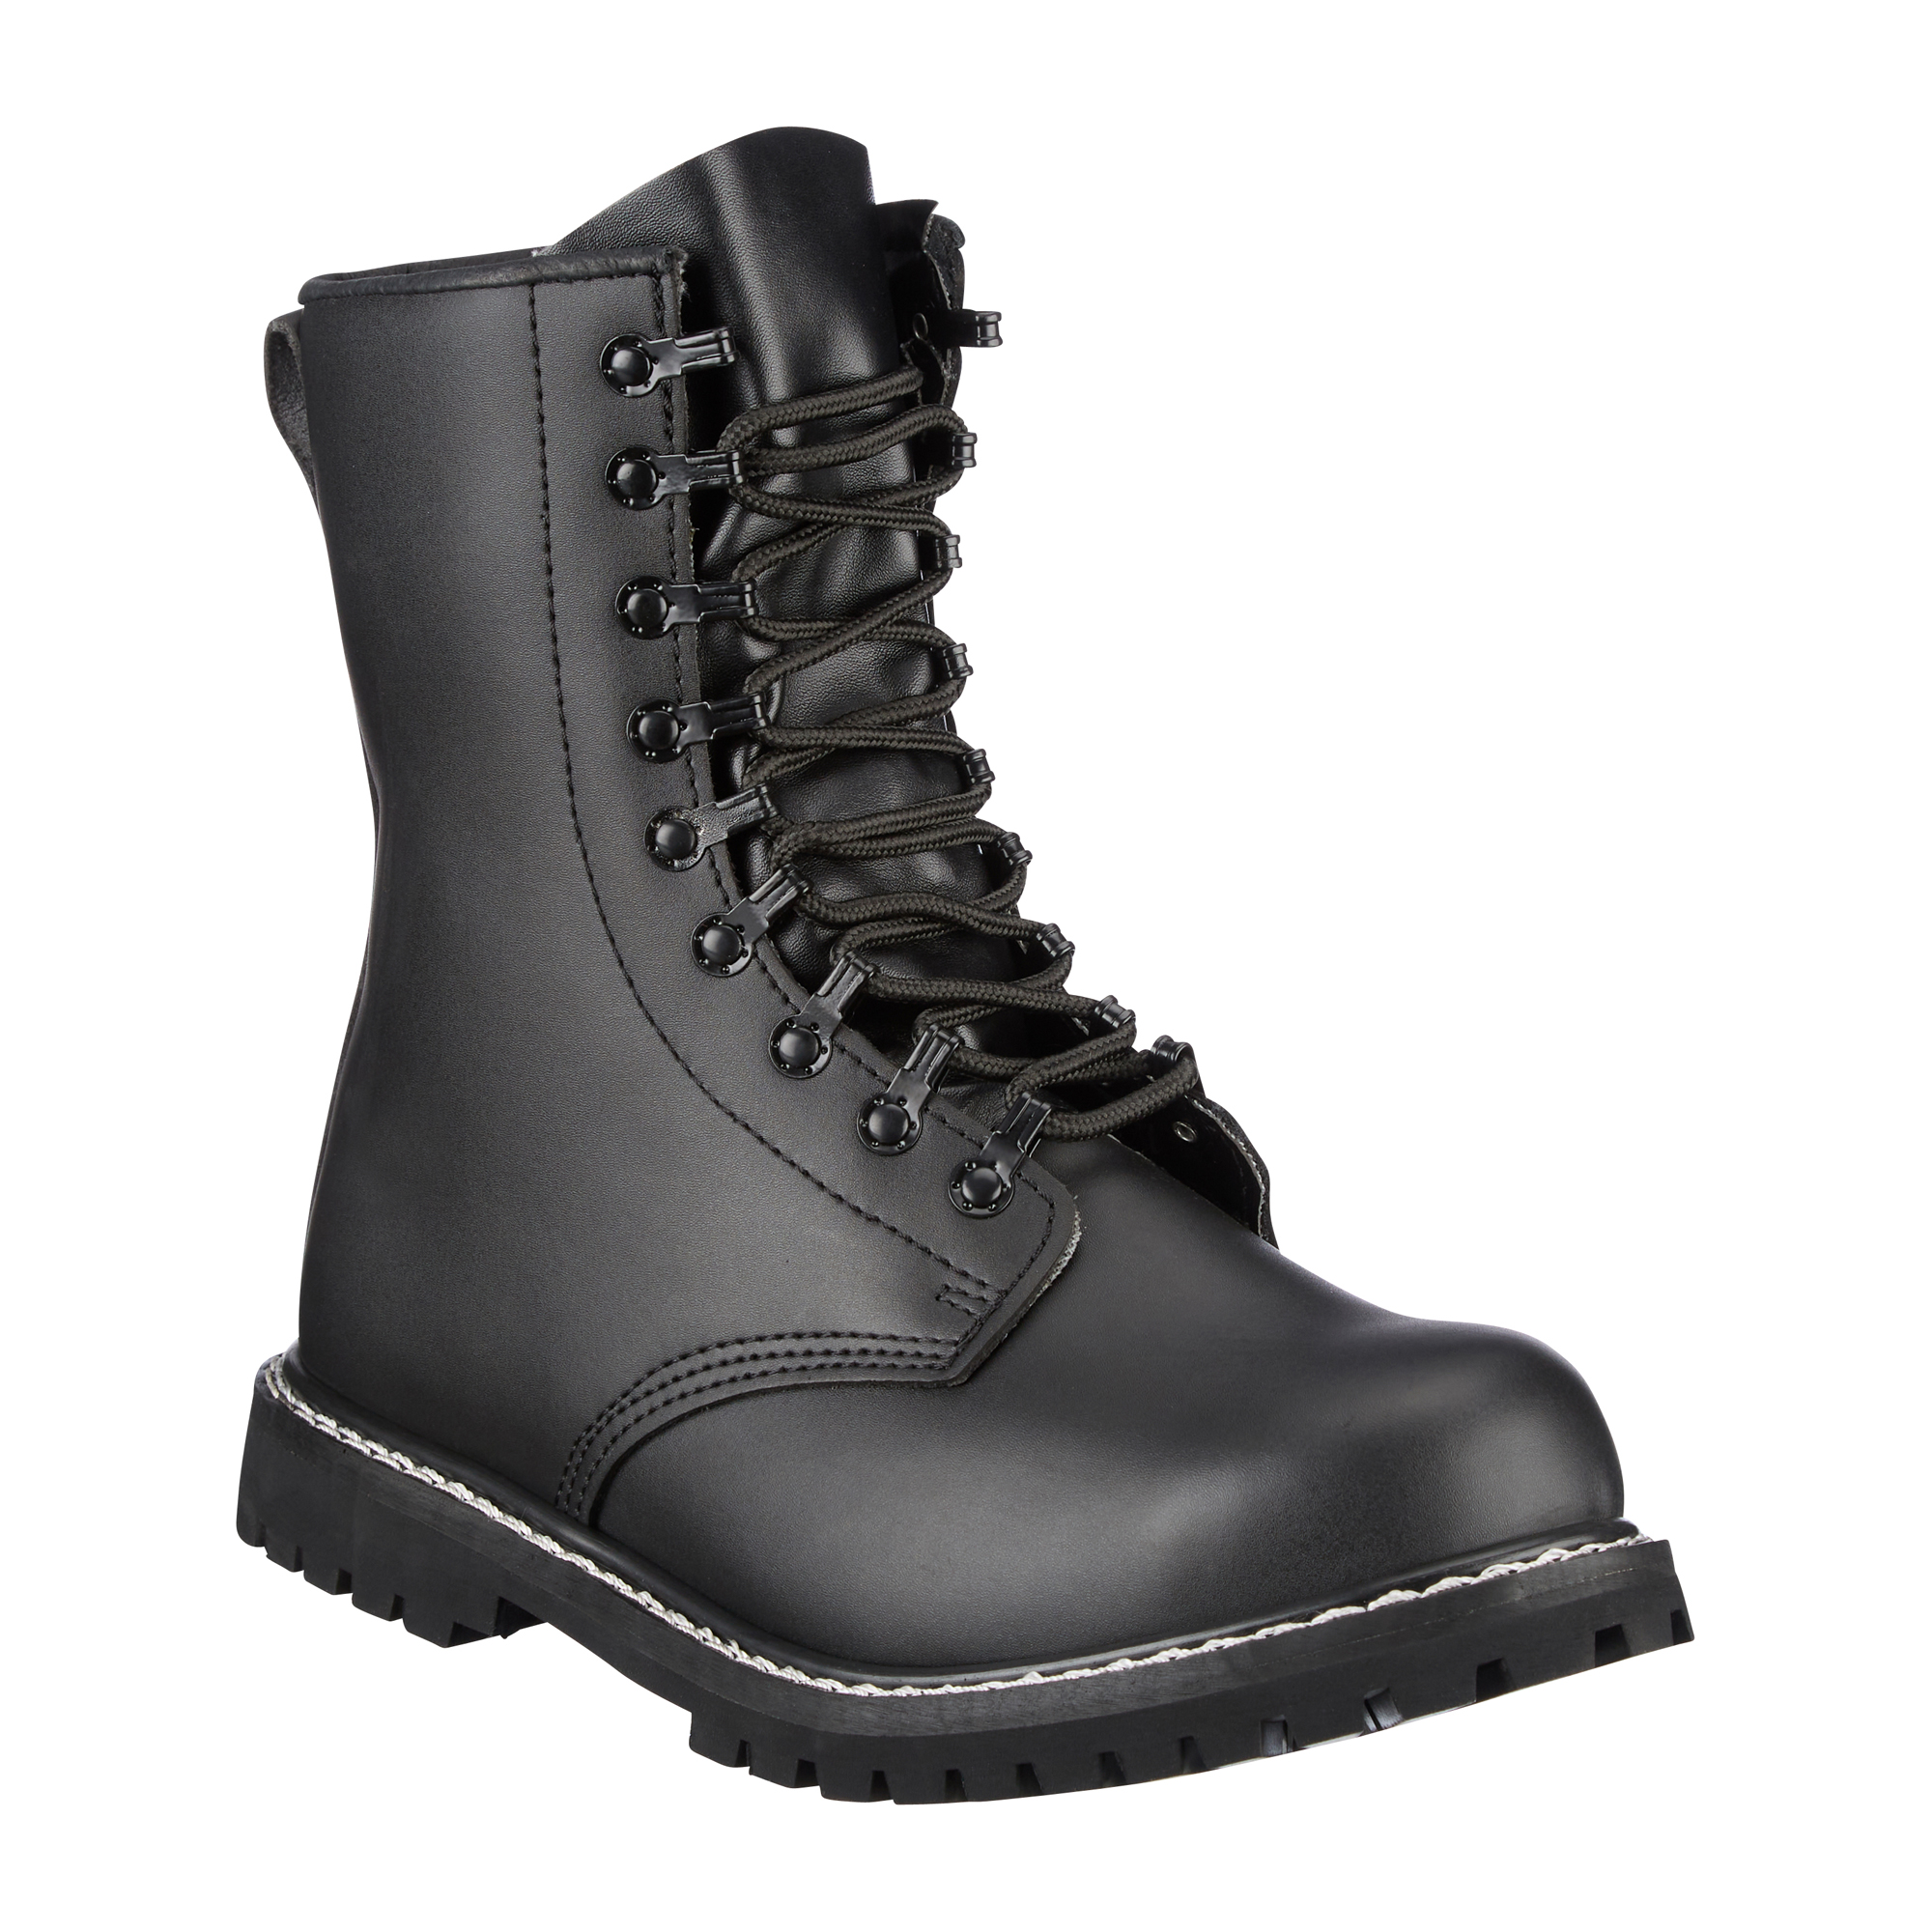 Parachute Boots Mil-Tec With Steel Toe